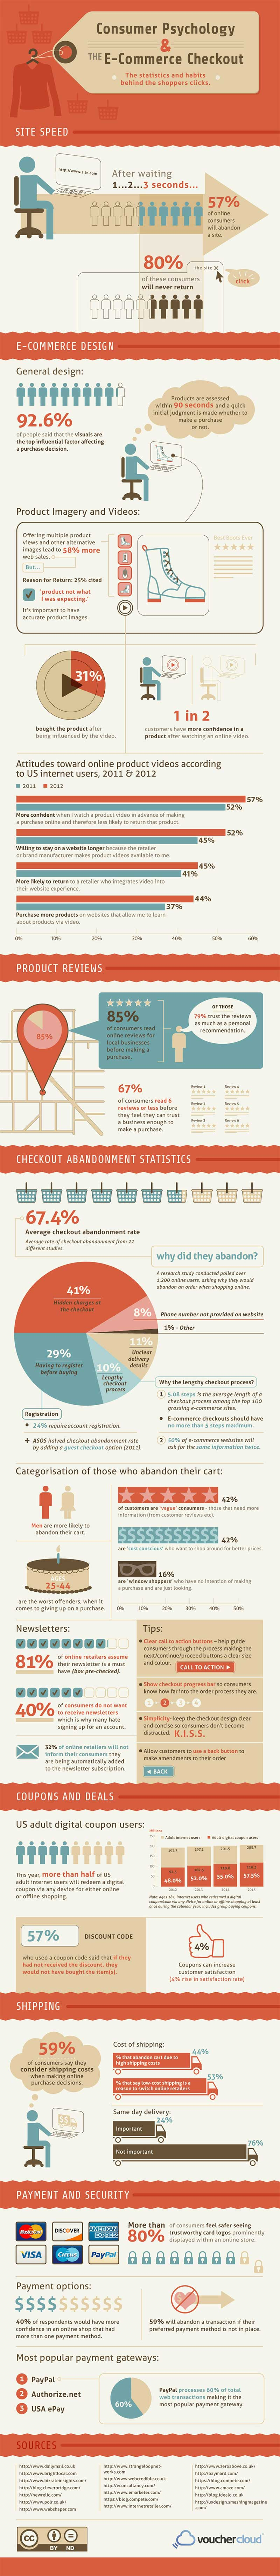 Ecommerce Checkout Psychology Infographic